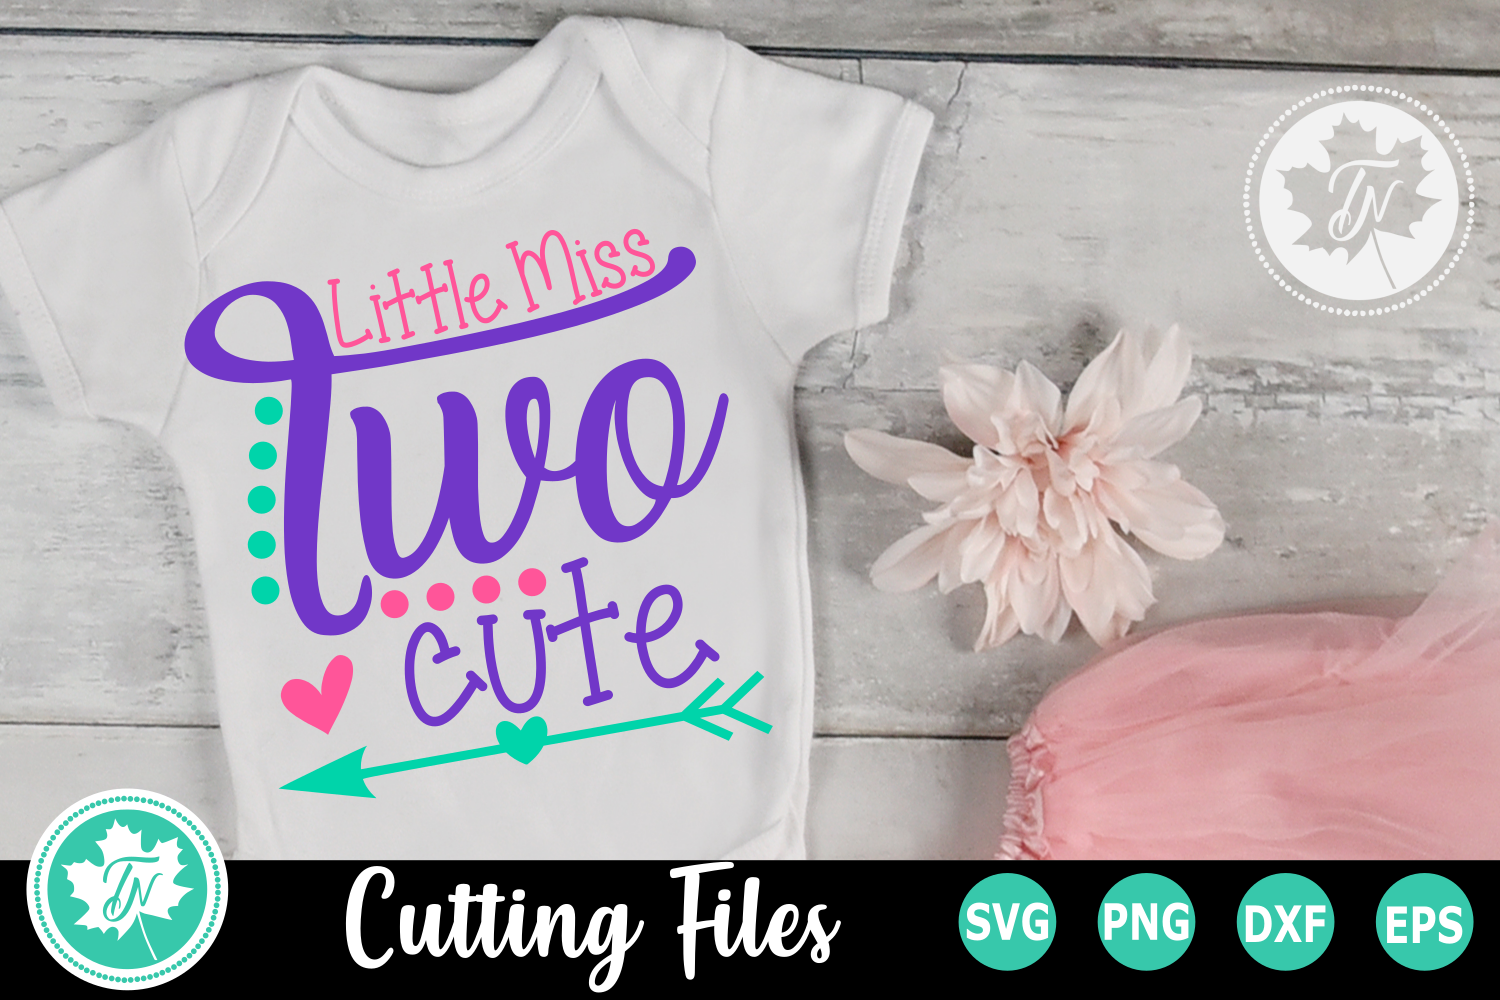 Little MIss Two Cute - A Second Birthday SVG Cut File example image 1